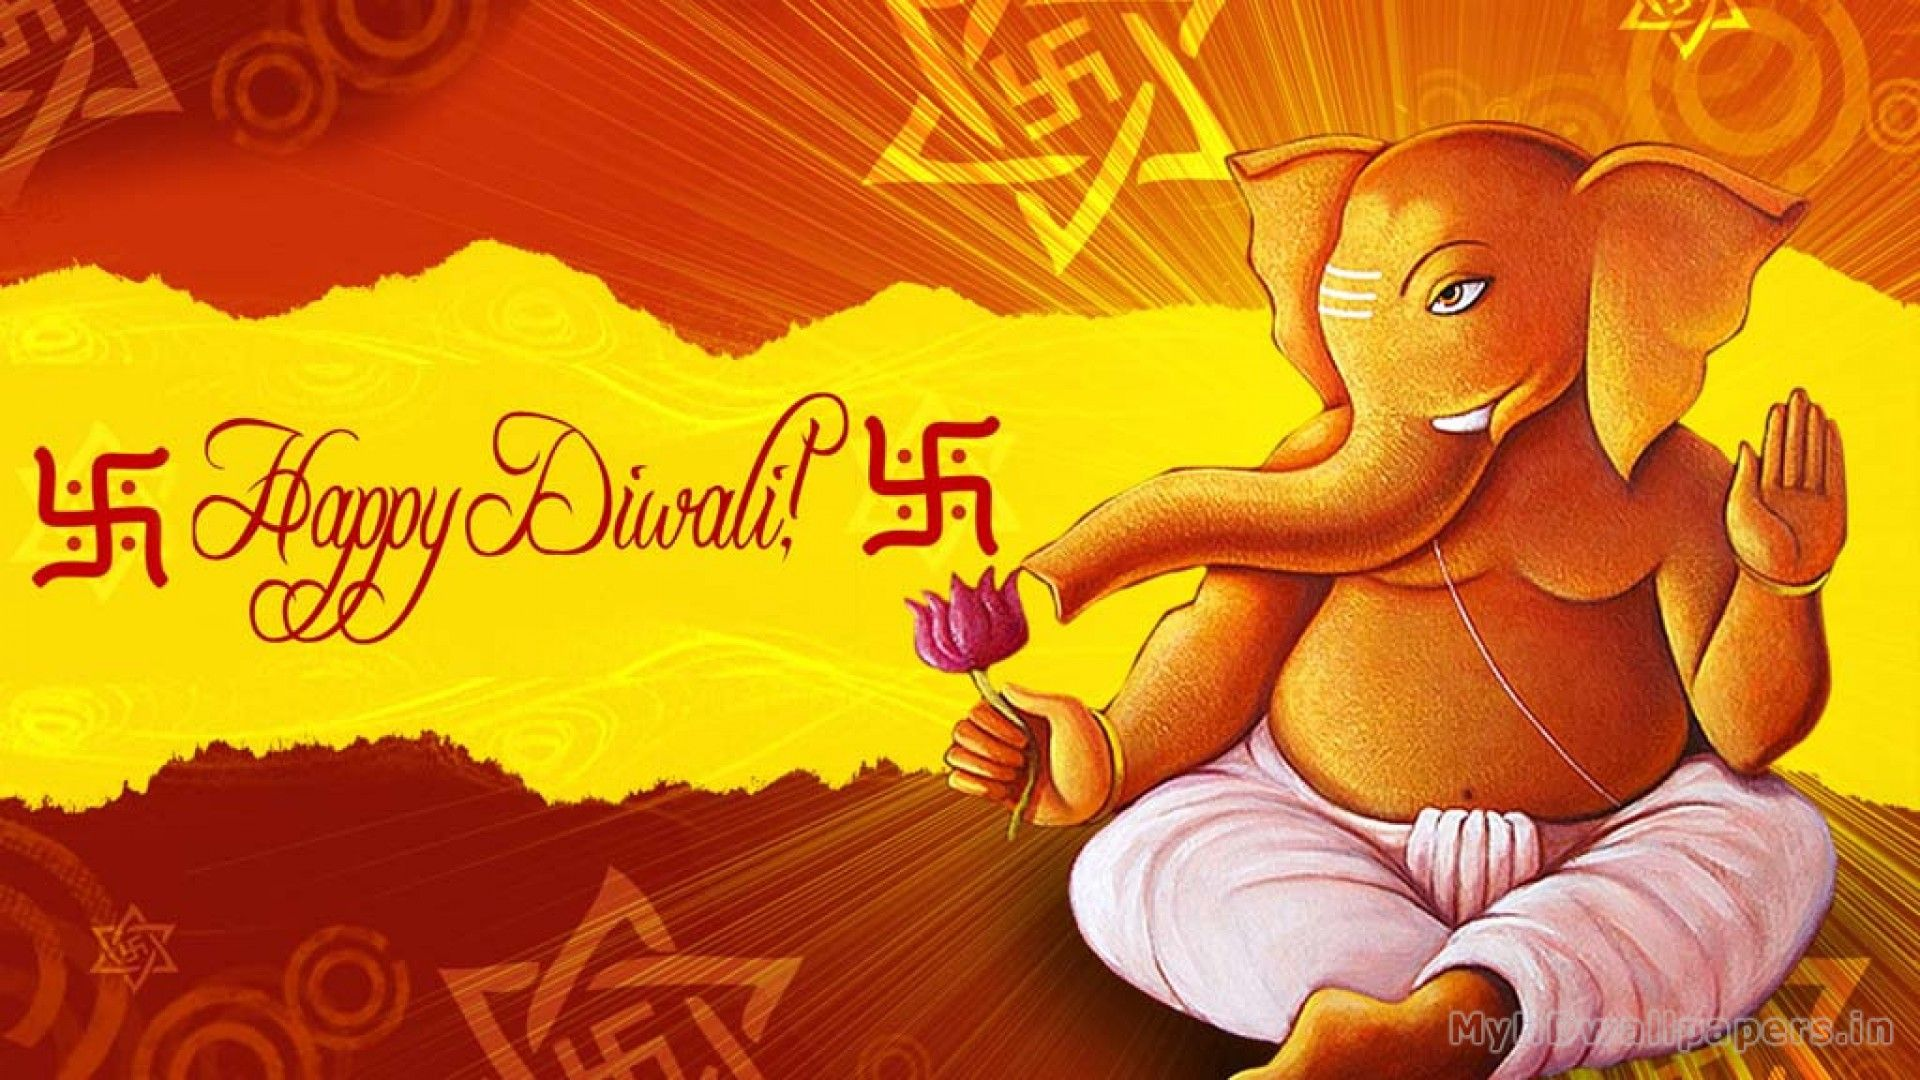 ganesh diwali wallpaper for desktop httpwww superwallpapers inwallpaper